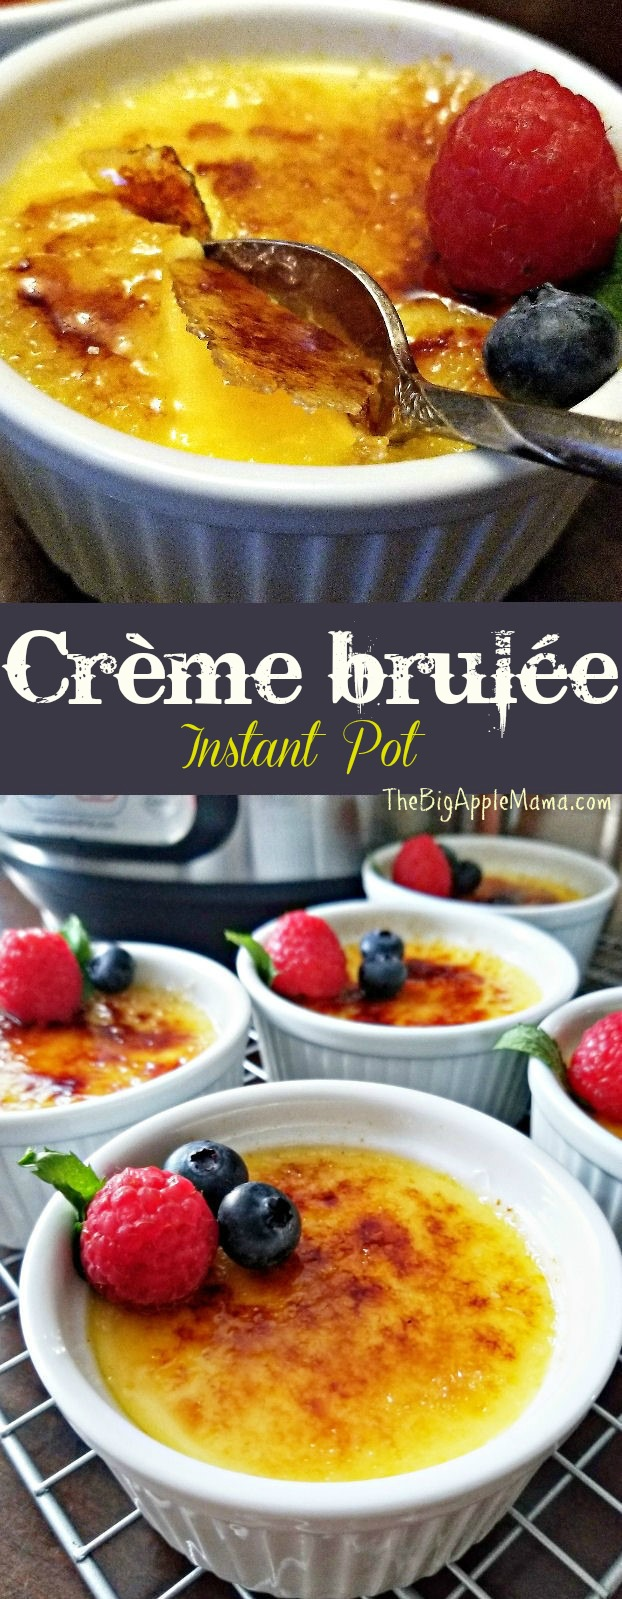 Instant Pot Creme Brulee: The BEST Recipe for Creme Brulee